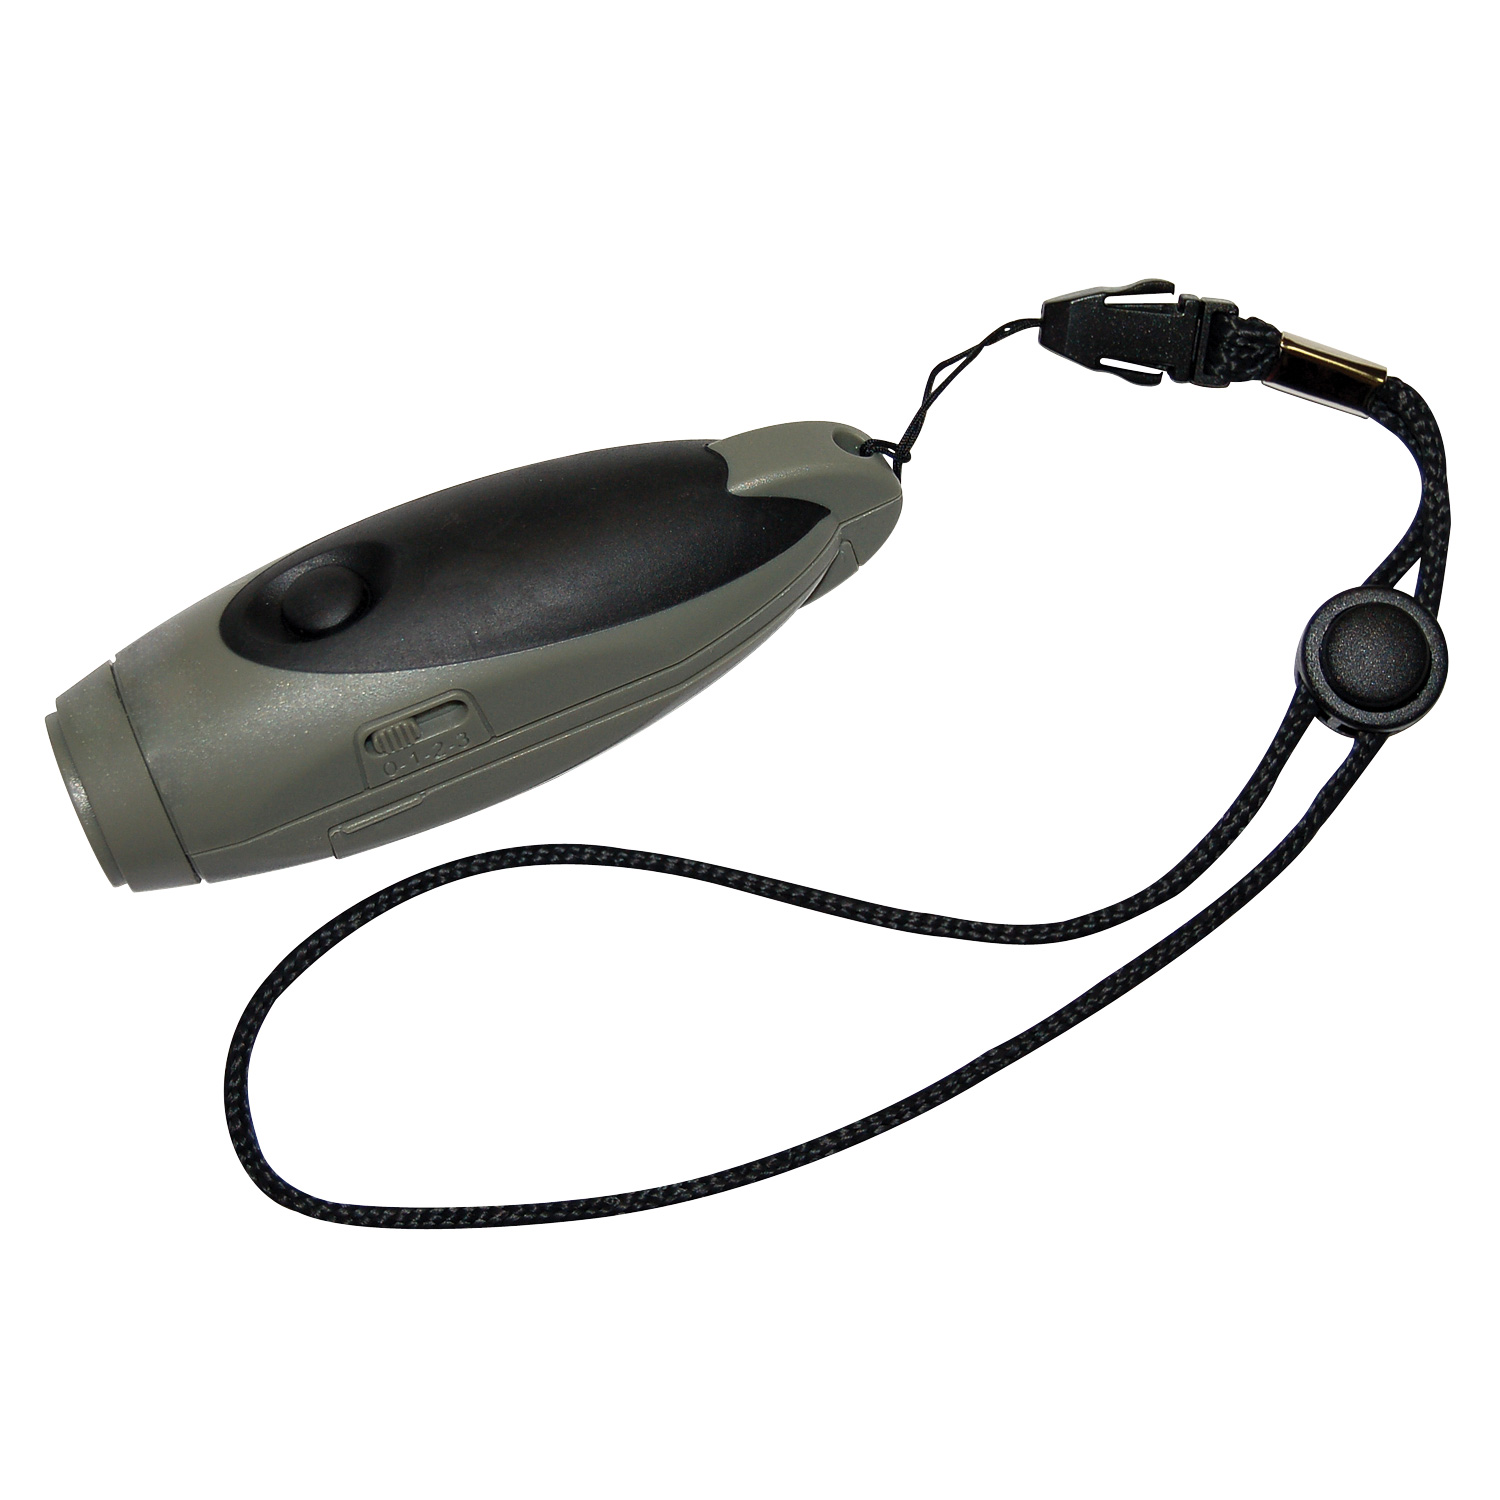 p-79080-electronic_whistle.jpg